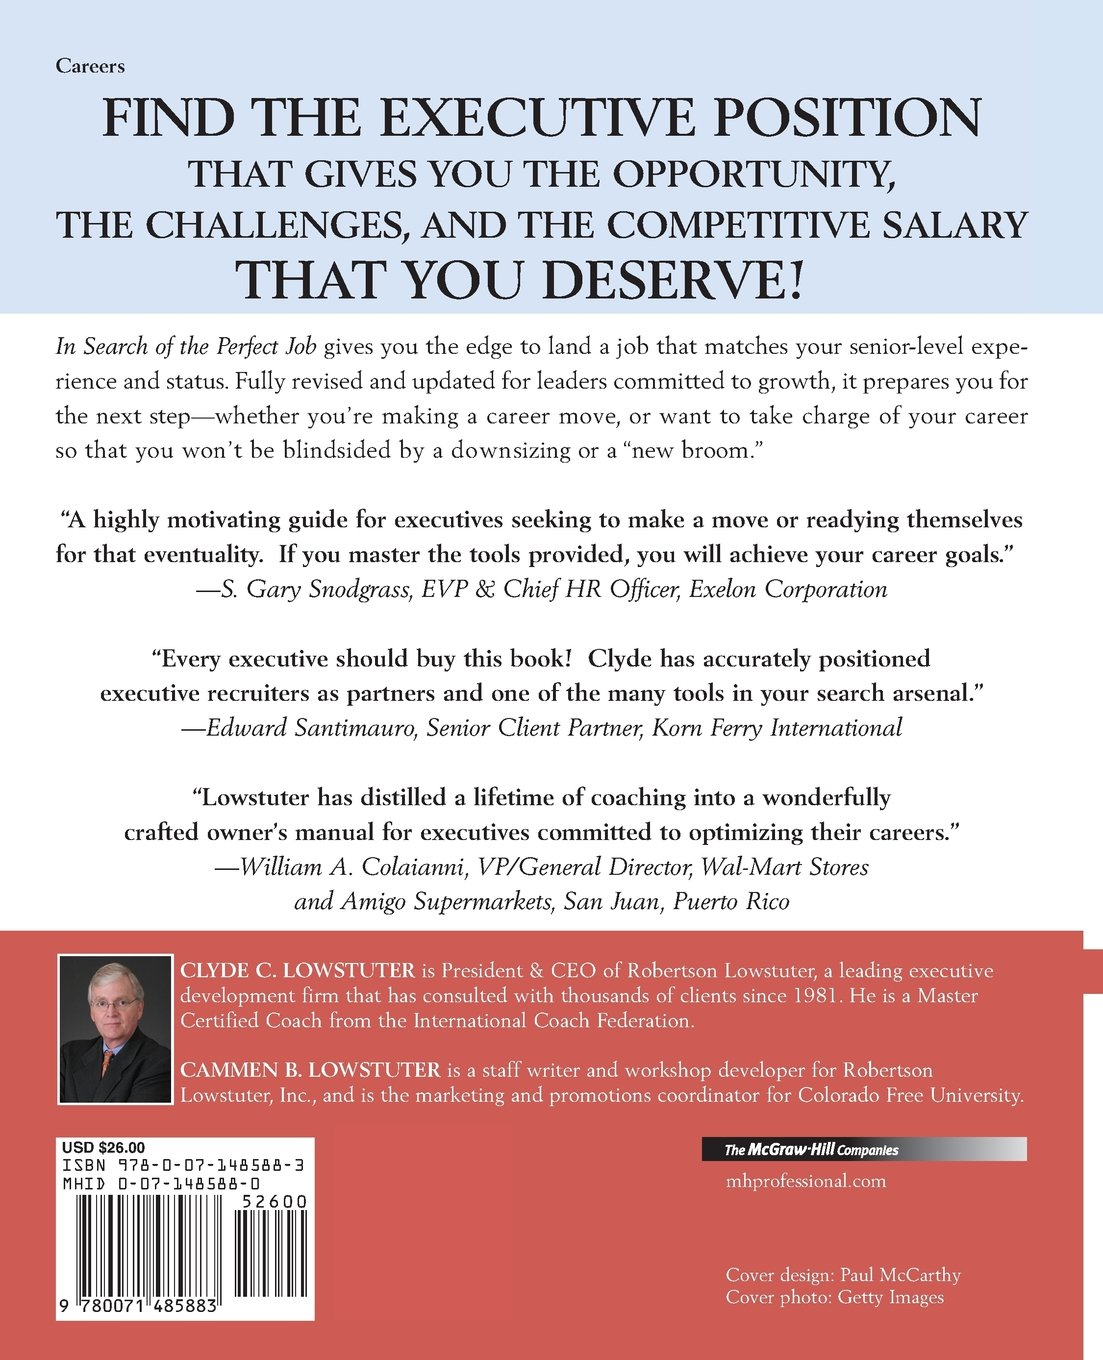 In Search Of The Perfect Job: 8 Steps To The $250, 000+ Executive Job  Thatu0027s Right For You: Clyde C. Lowstuter: 9780071485883: Amazon.com: Books